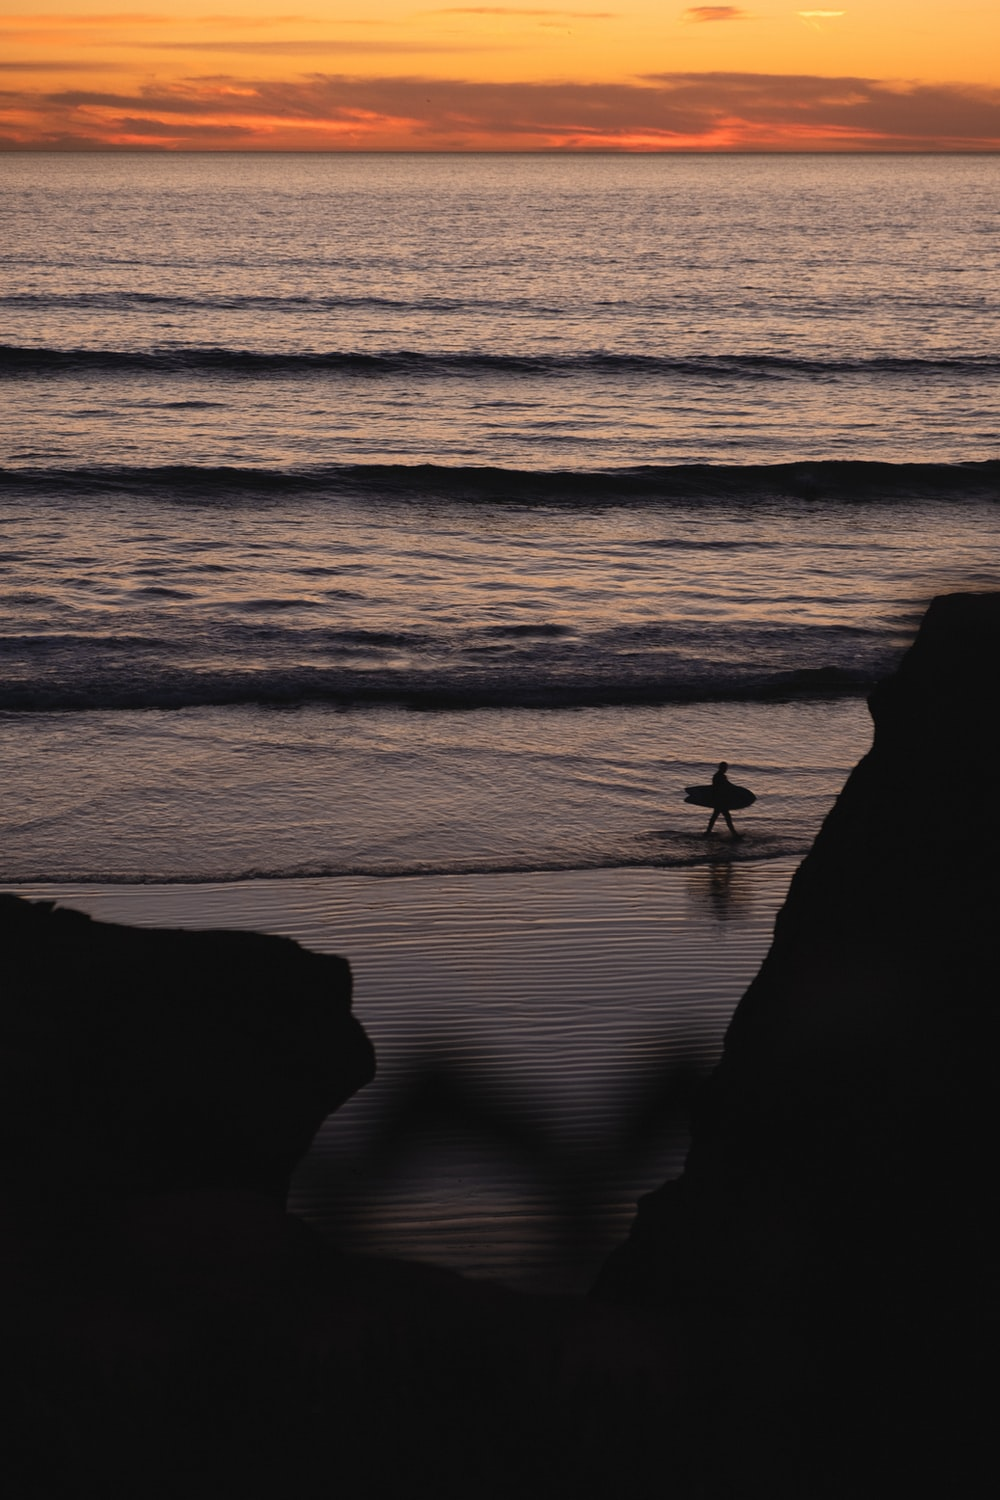 silhouette of 2 people standing on seashore during sunset